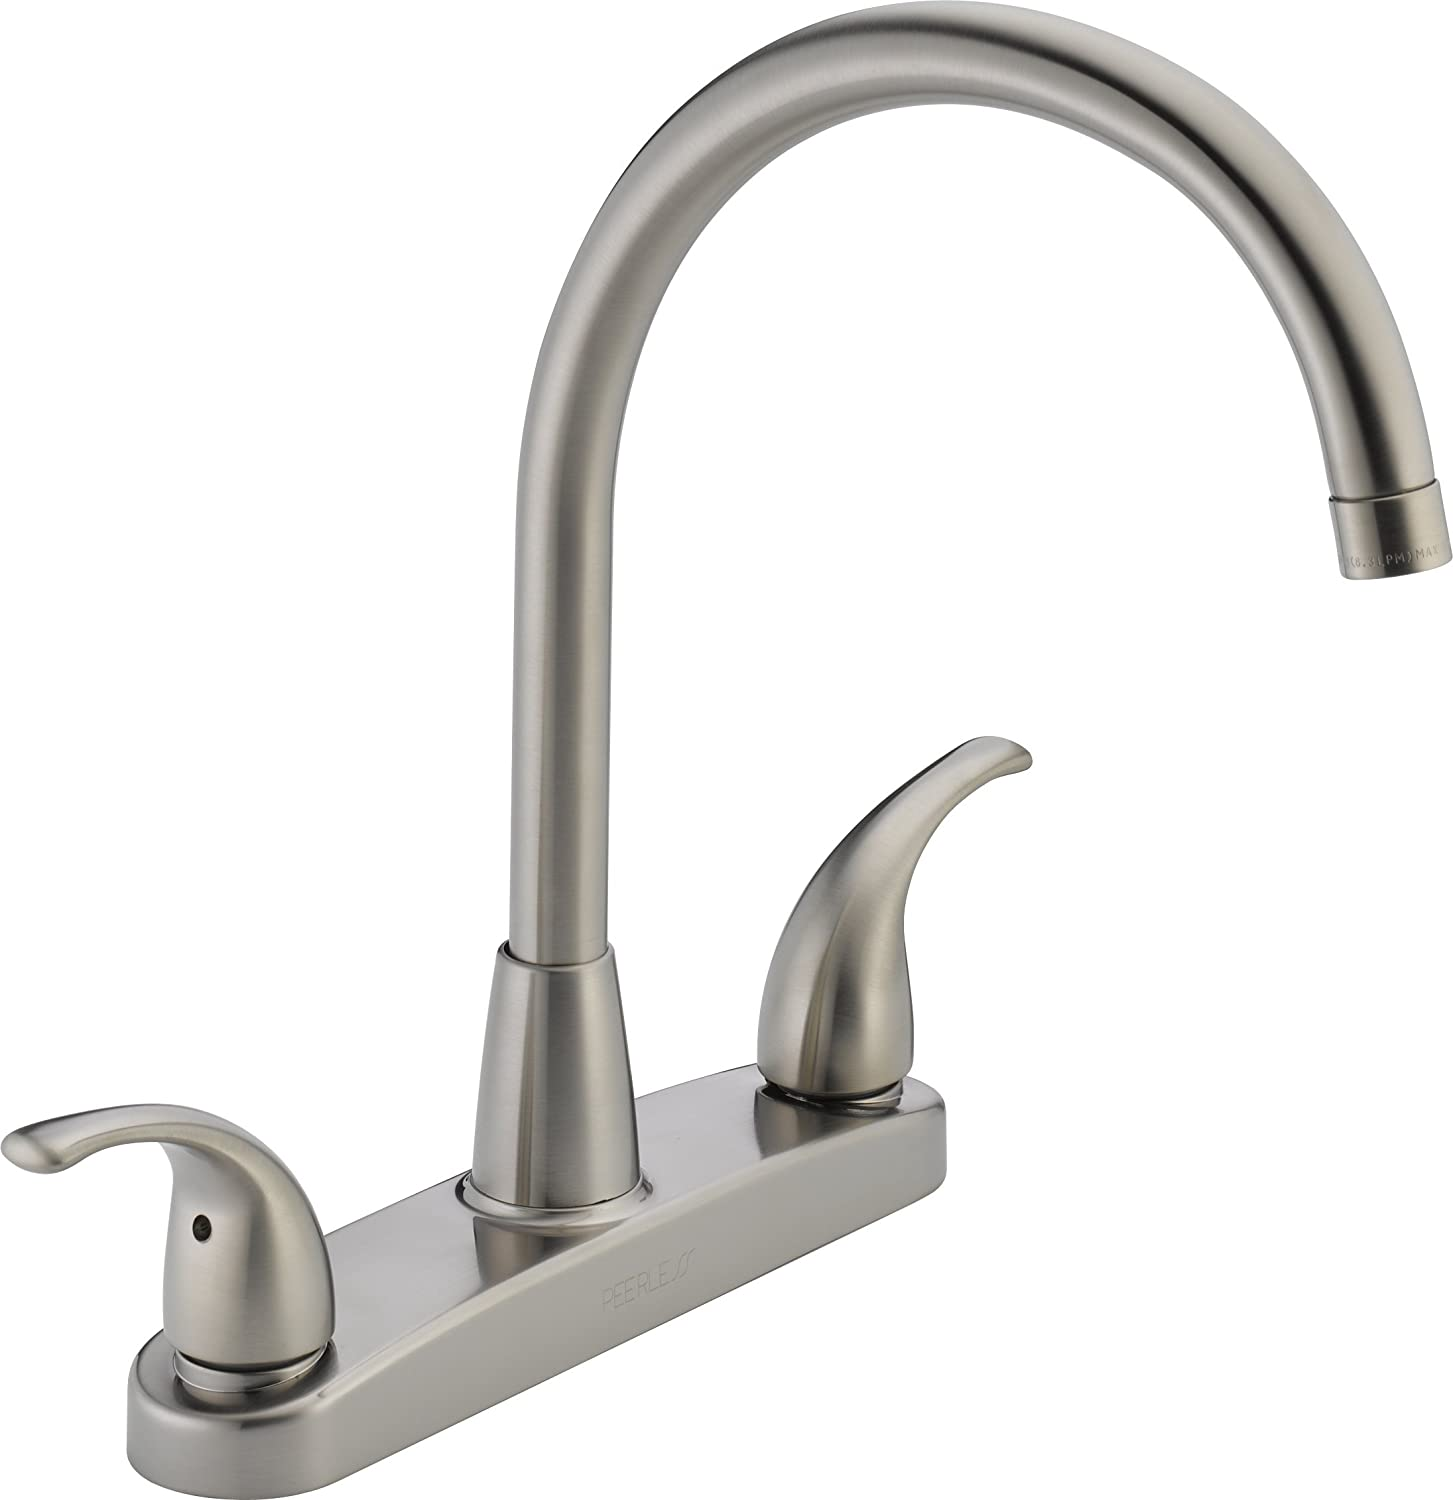 Peerless P LF Choice Two Handle Kitchen Faucet Chrome